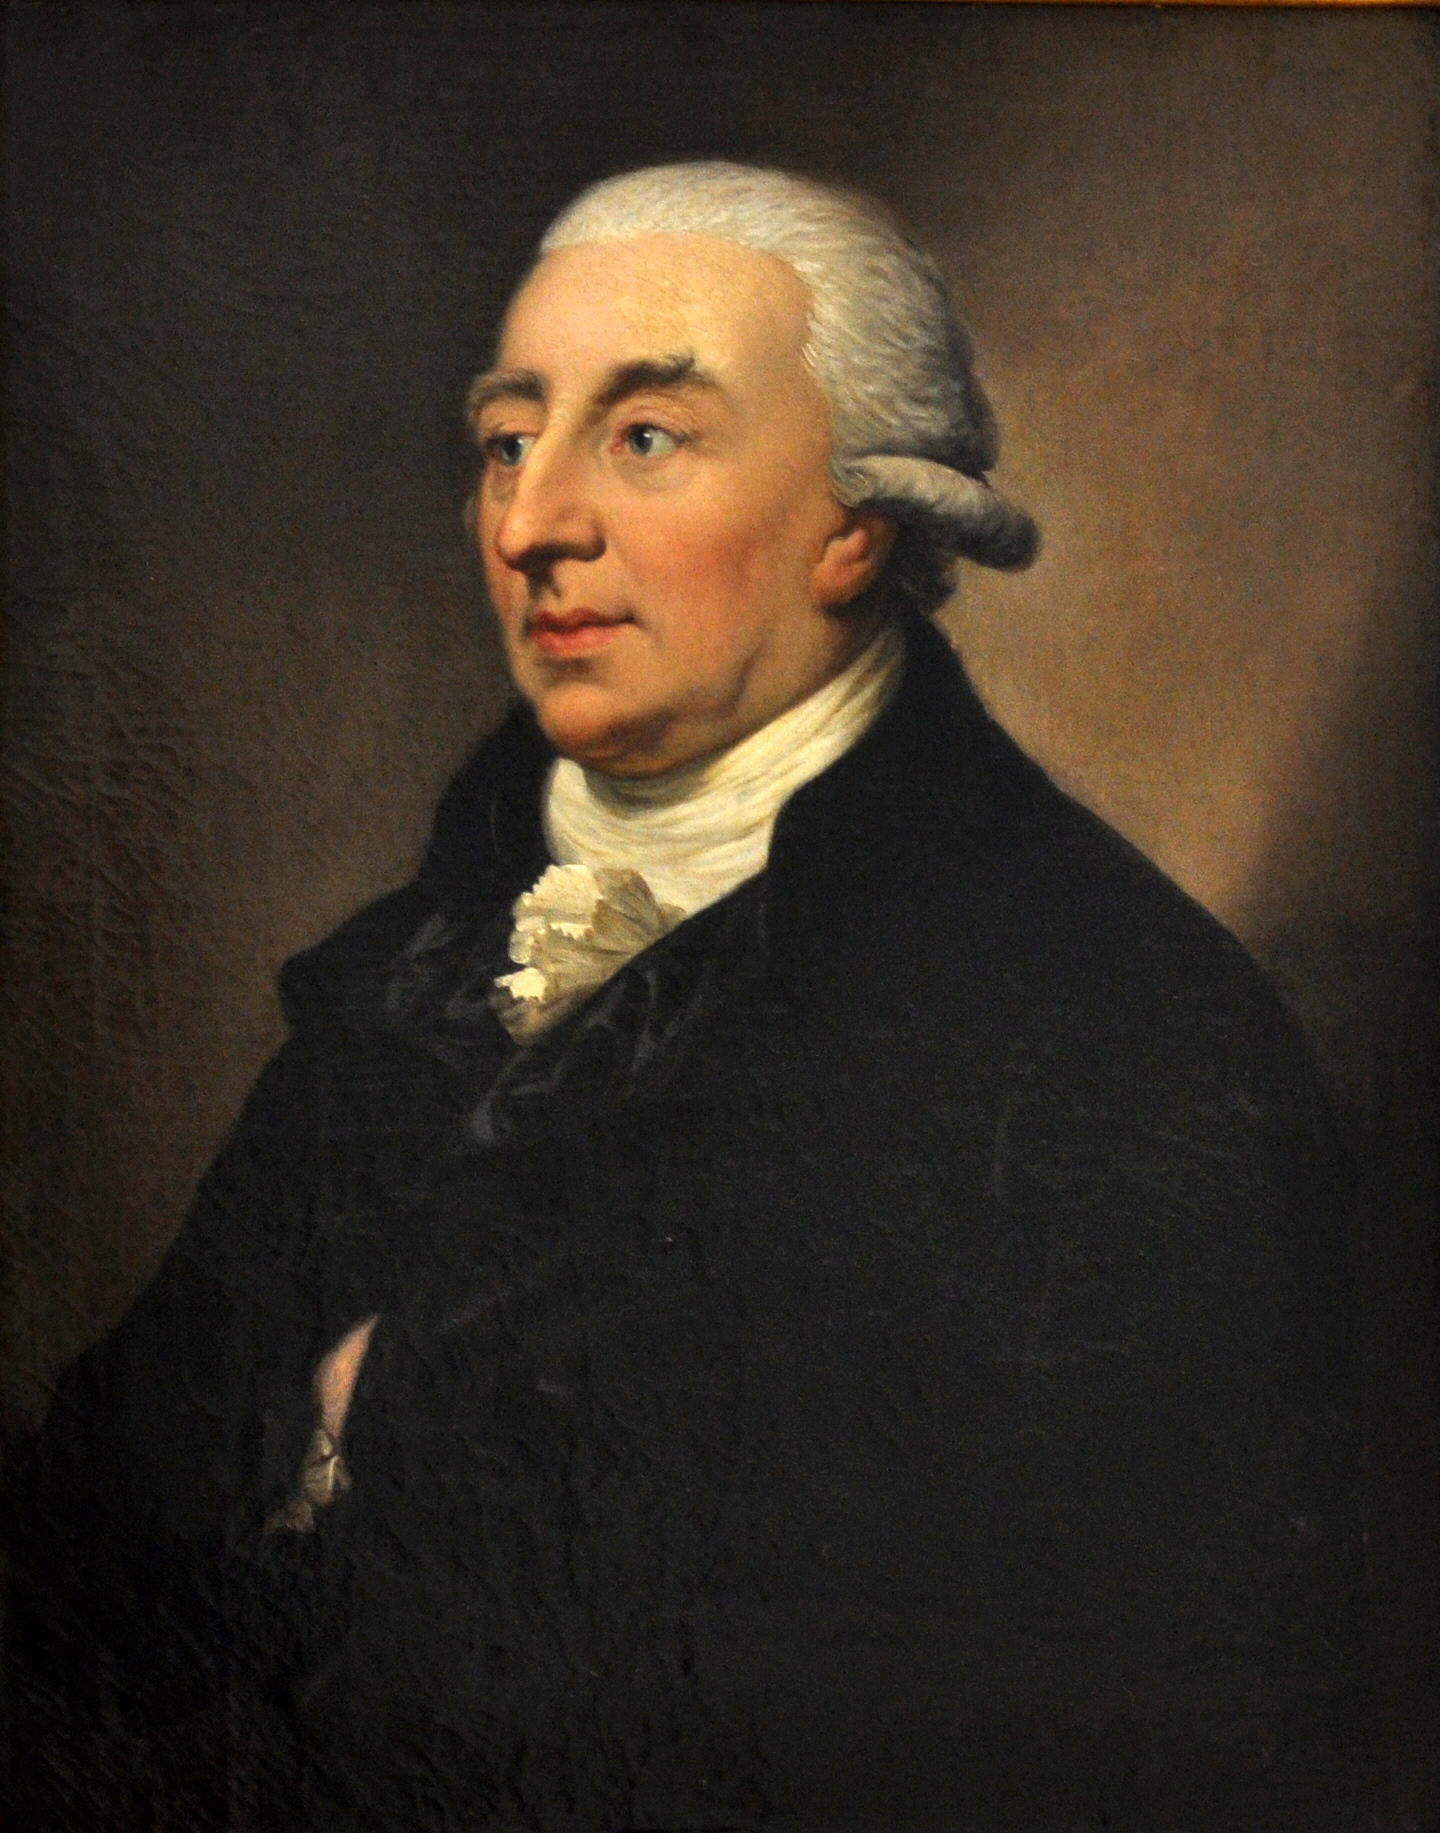 Johann Christoph Adelung, in a portrait by [[Anton Graff]]